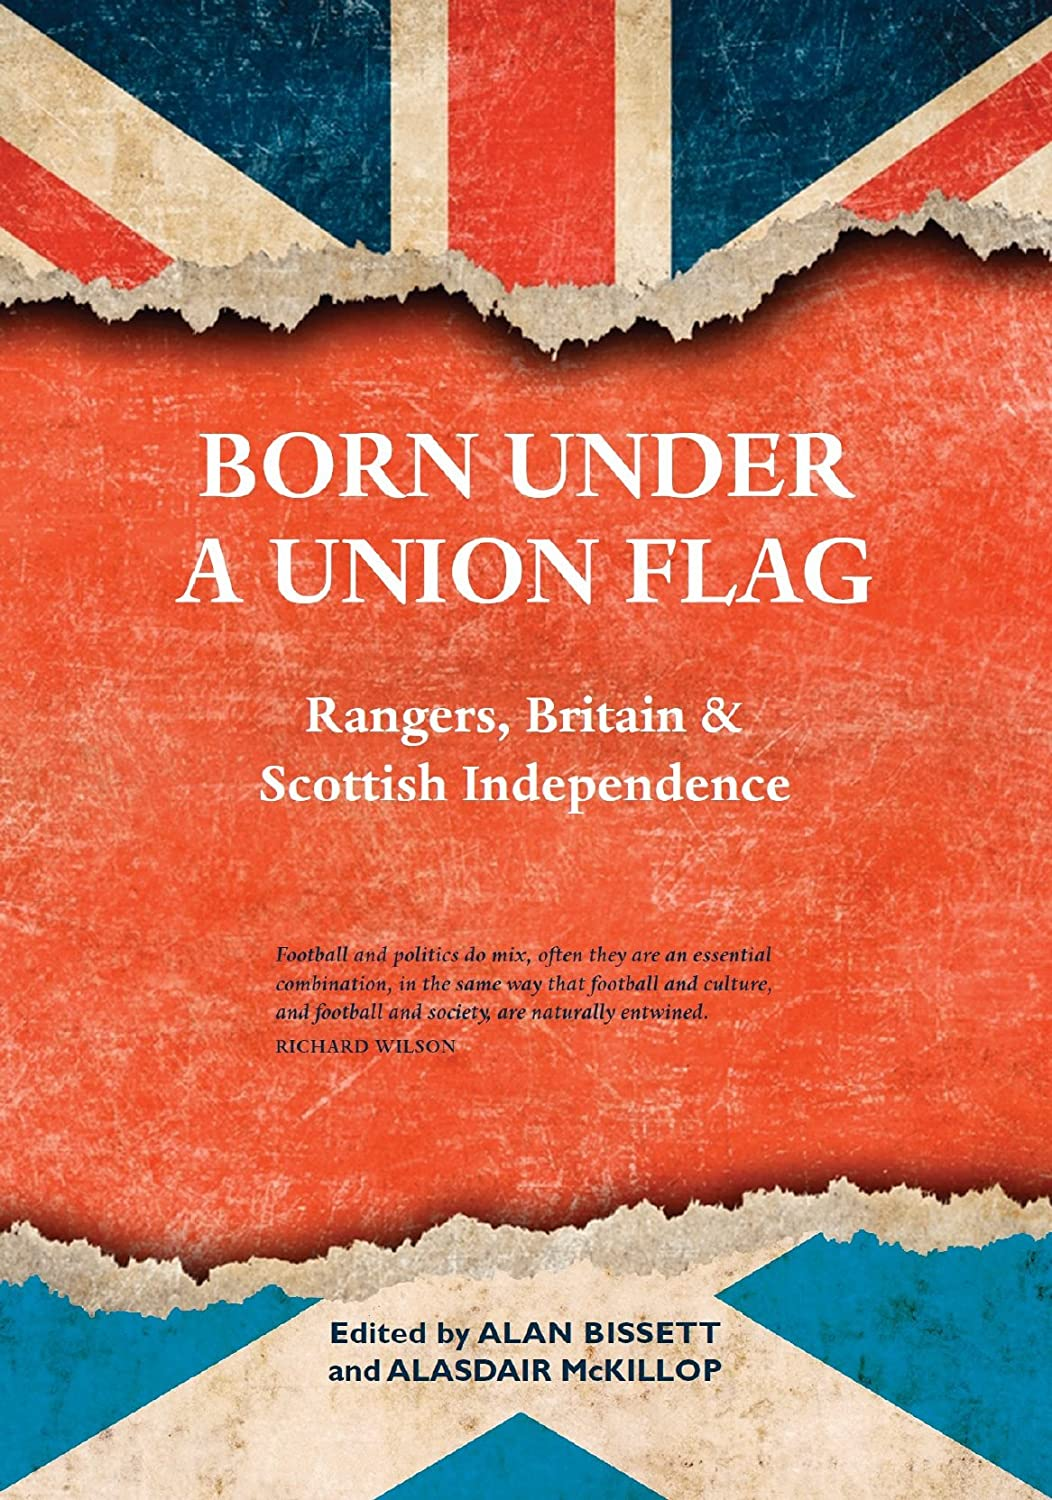 Born Under a Union Flag